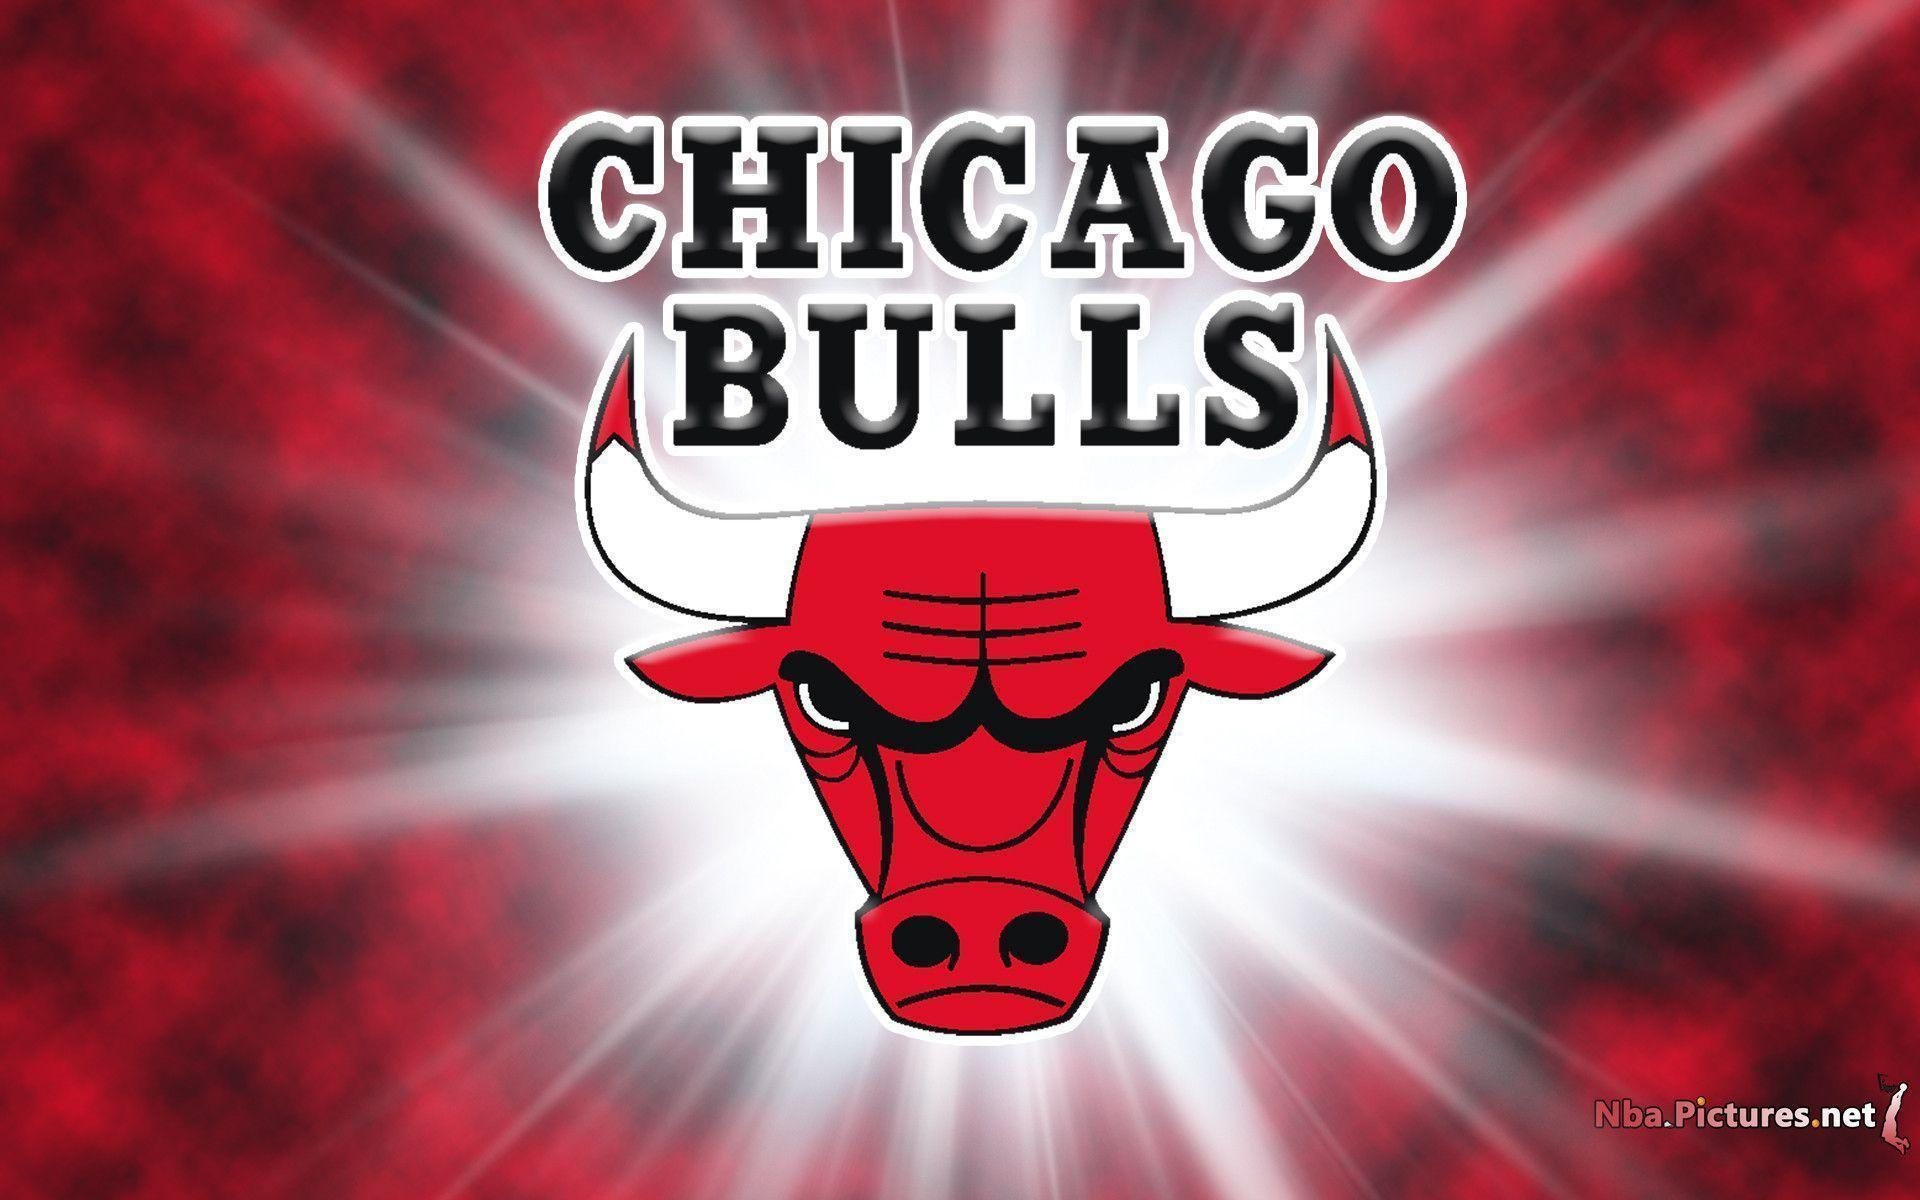 Bulls Wallpapers - Full HD wallpaper search - page 10